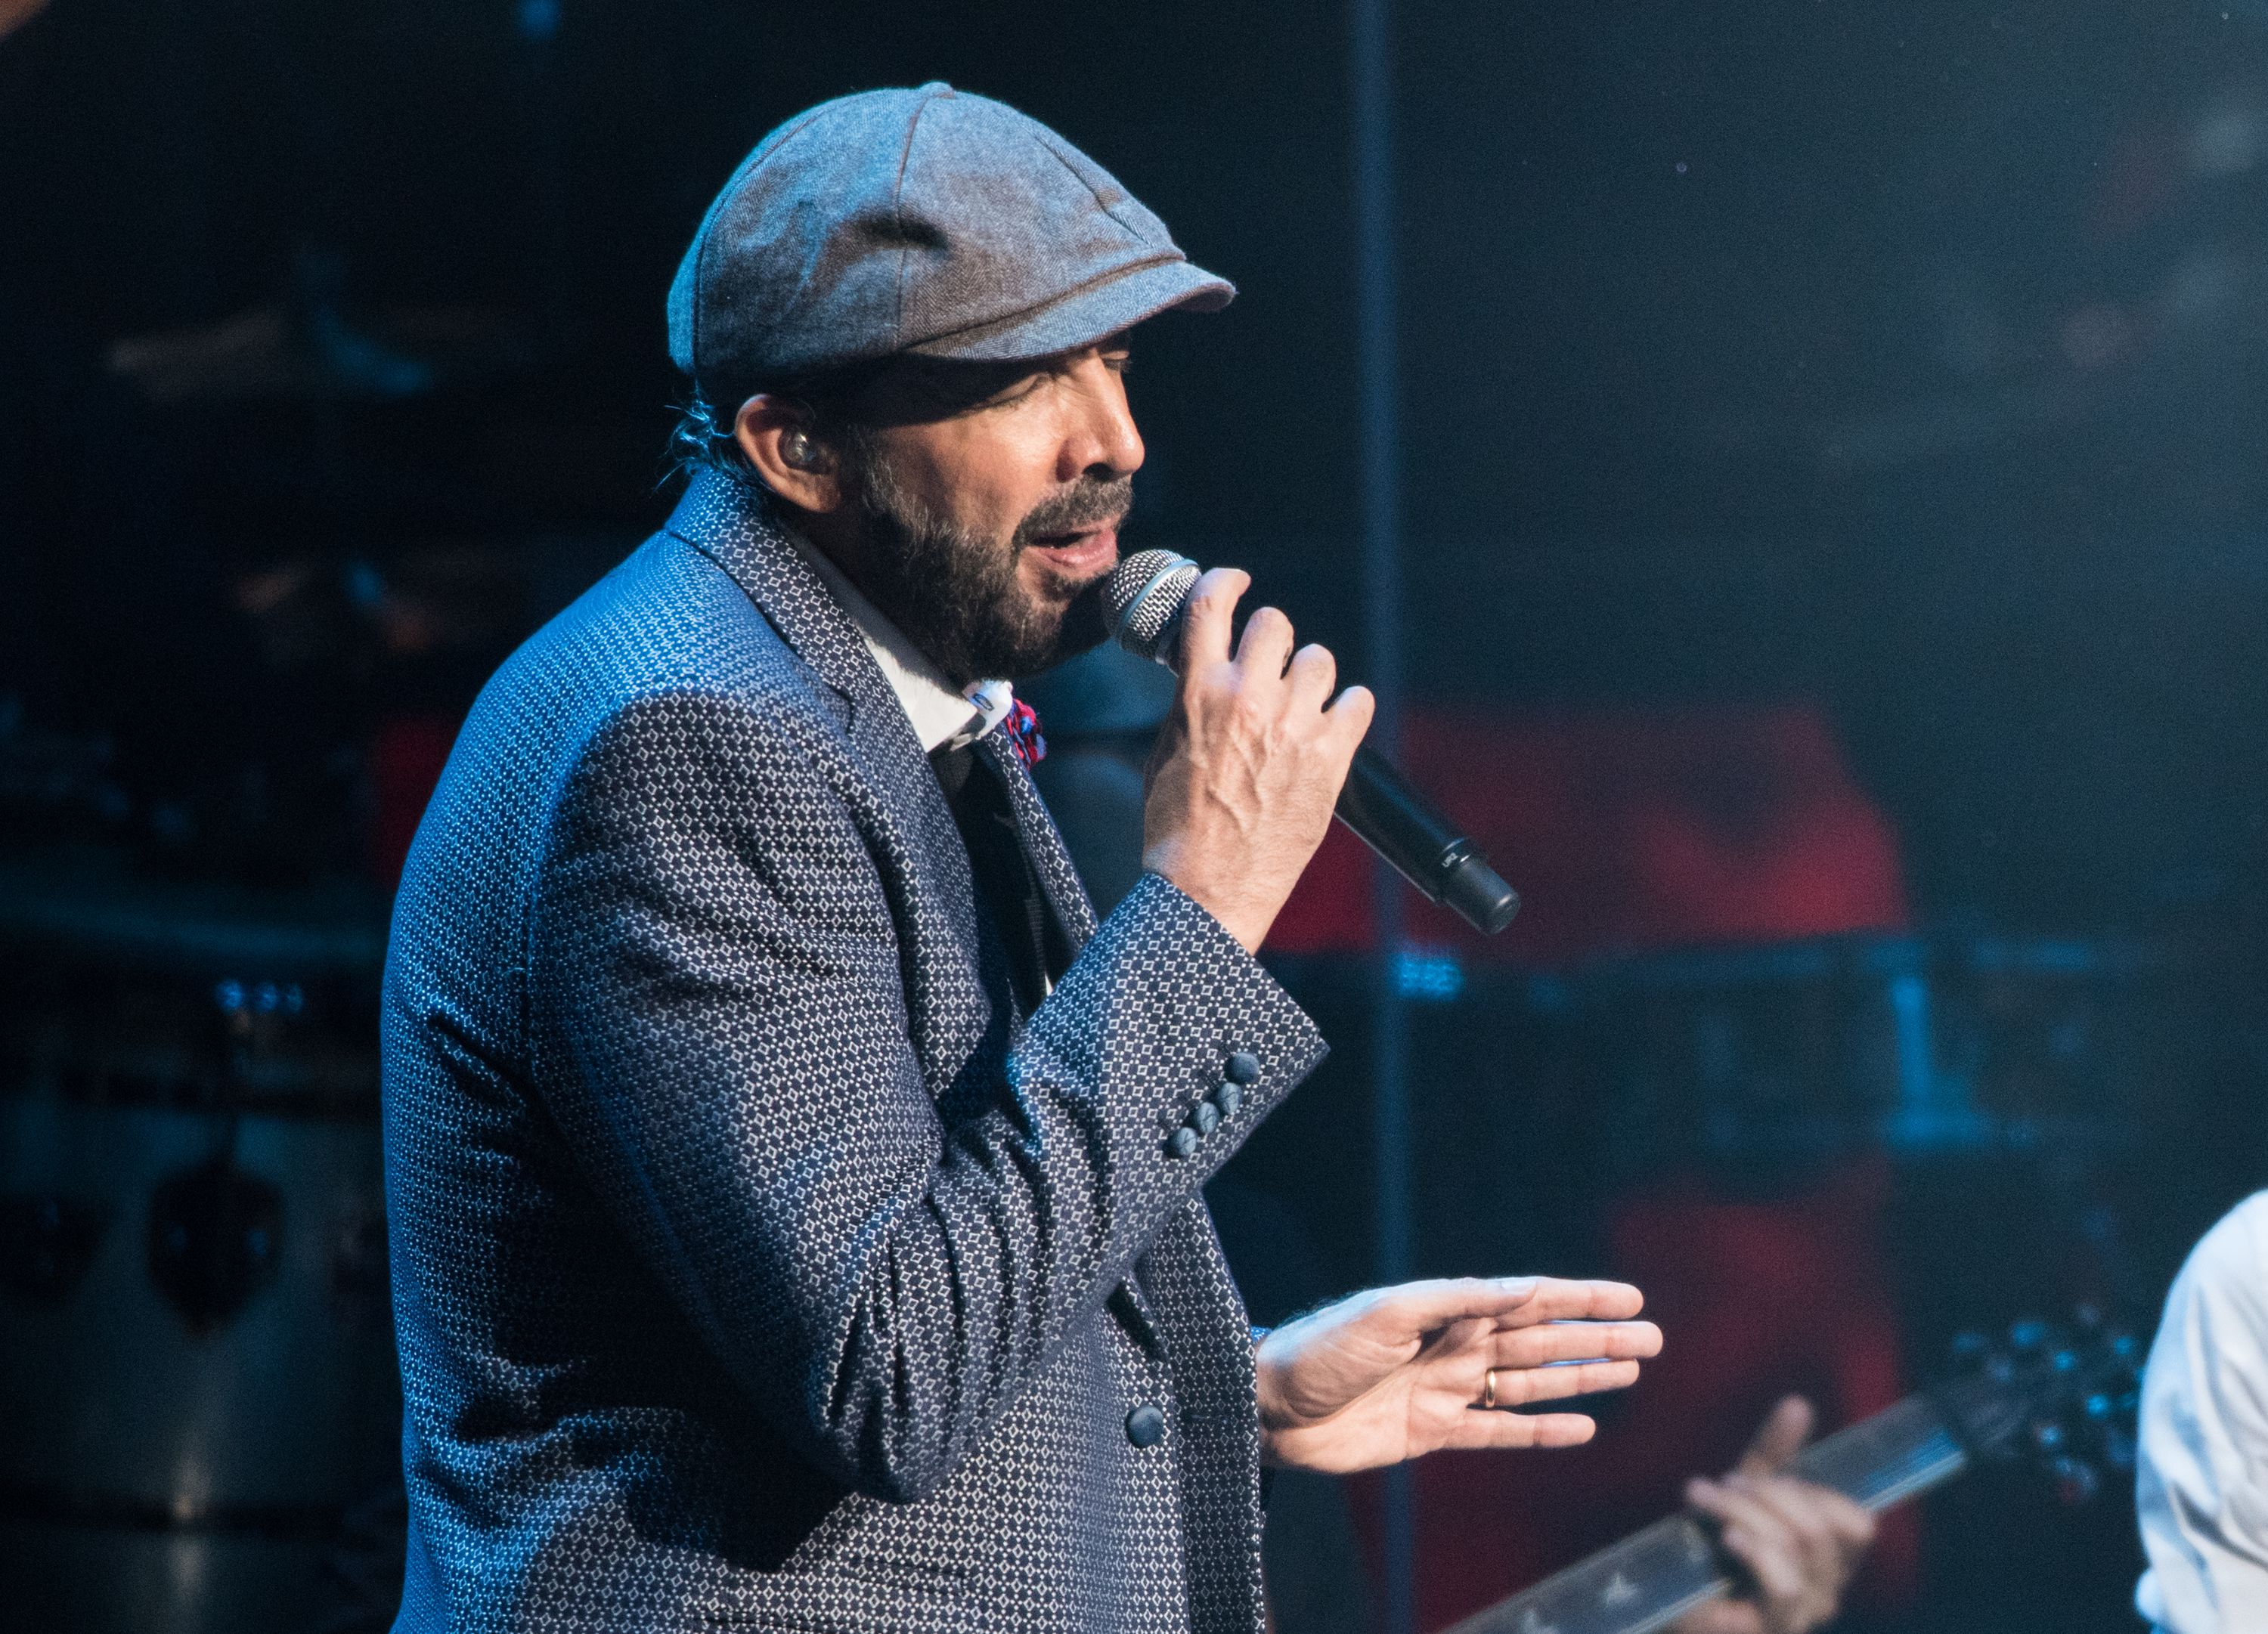 Juan Luis Guerra performs in concert at Radio City Music Hall on August 26, 2016